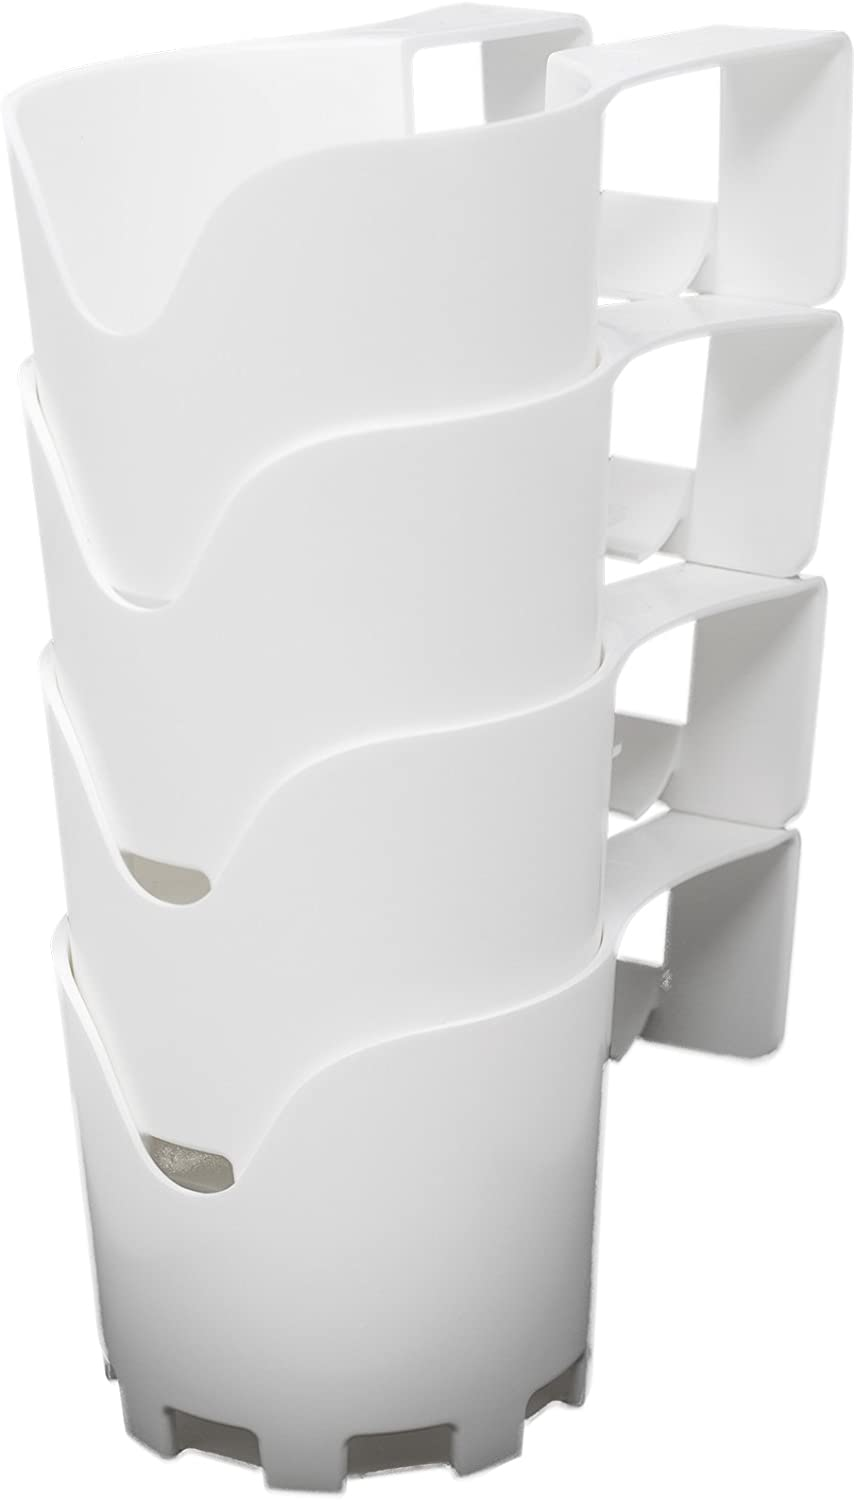 BeraTek Industries Storage Theory | Poolside Cup Holder | Designed for Above Ground Pools | Only Fits 2 inch or Less Round Top Bar | White Color | 4 Pack